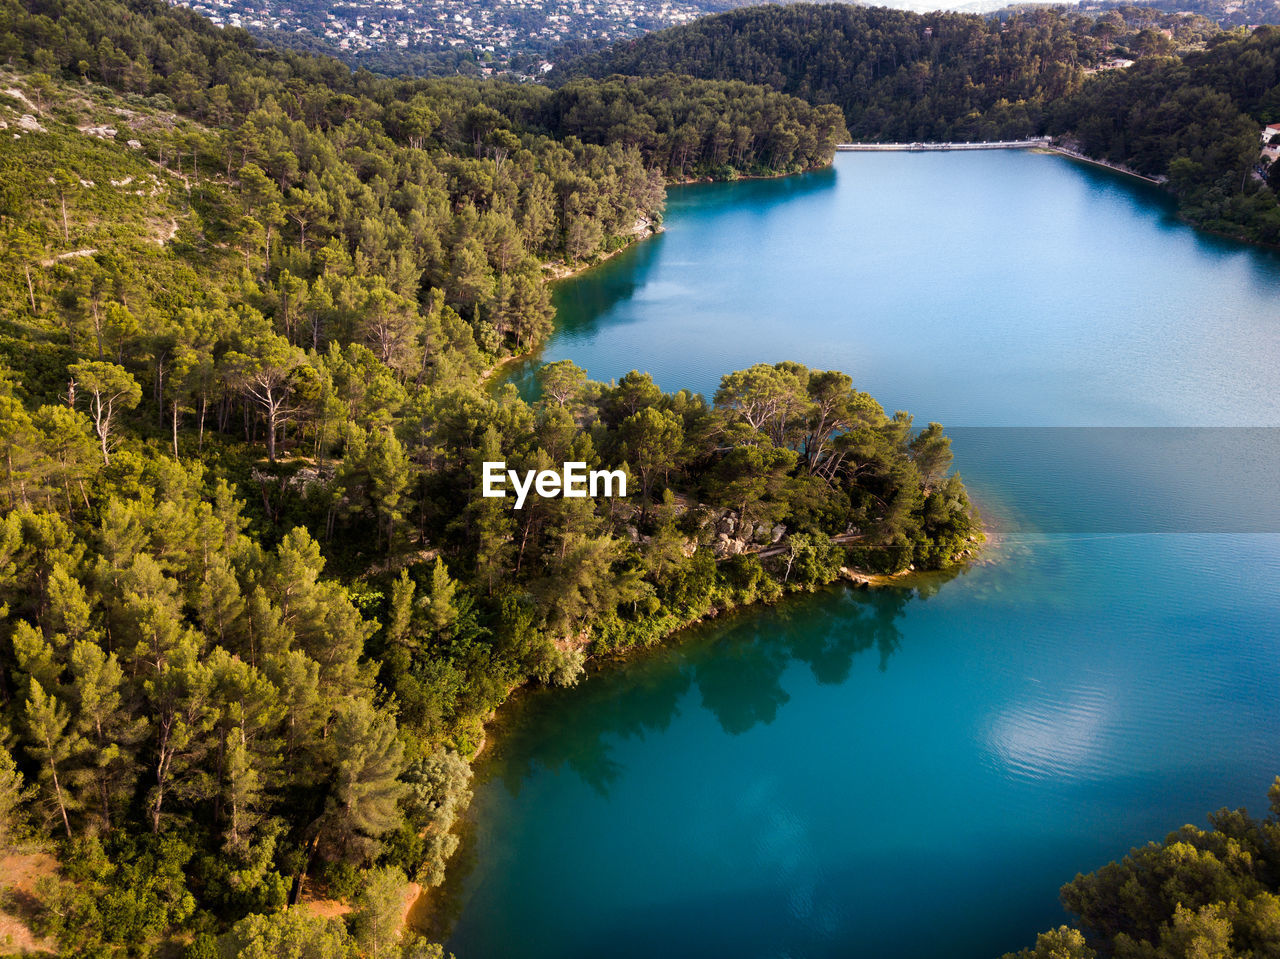 water, scenics - nature, tree, lake, tranquil scene, plant, tranquility, beauty in nature, high angle view, nature, day, no people, land, non-urban scene, mountain, forest, idyllic, remote, outdoors, turquoise colored, lagoon